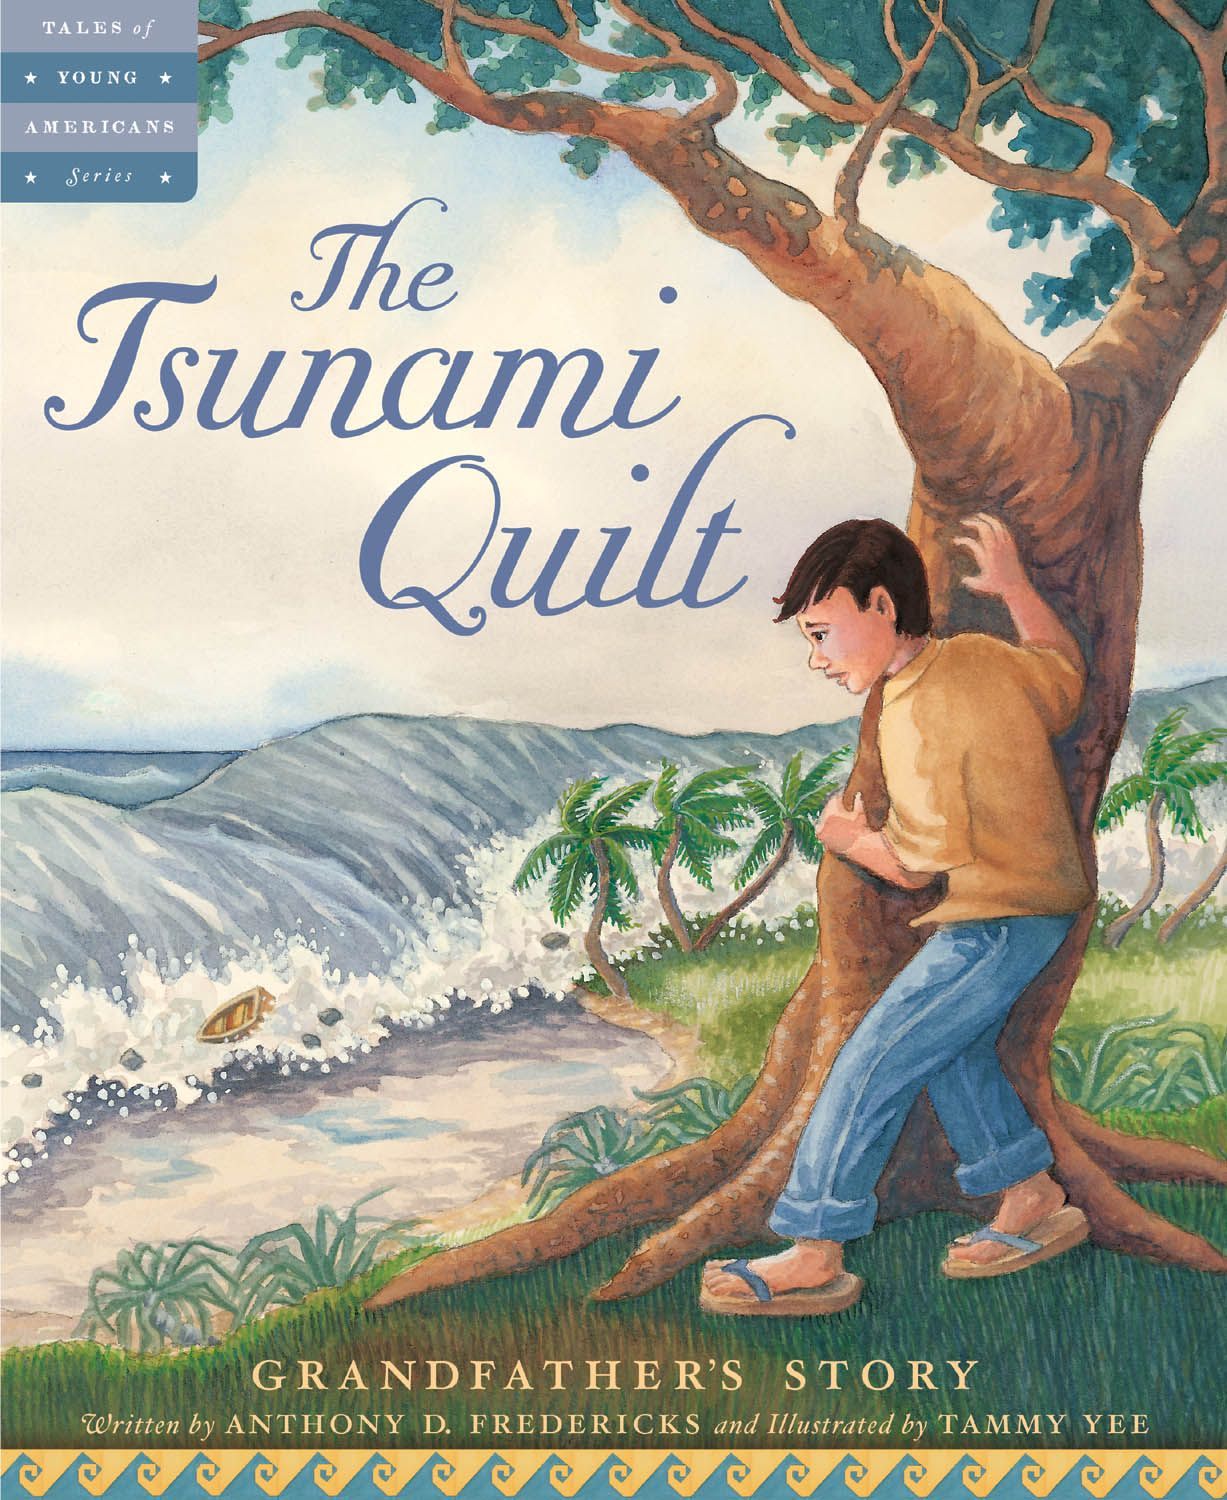 Vintage childrens story book about tsunami google search vintage childrens story book about tsunami google search fandeluxe Choice Image